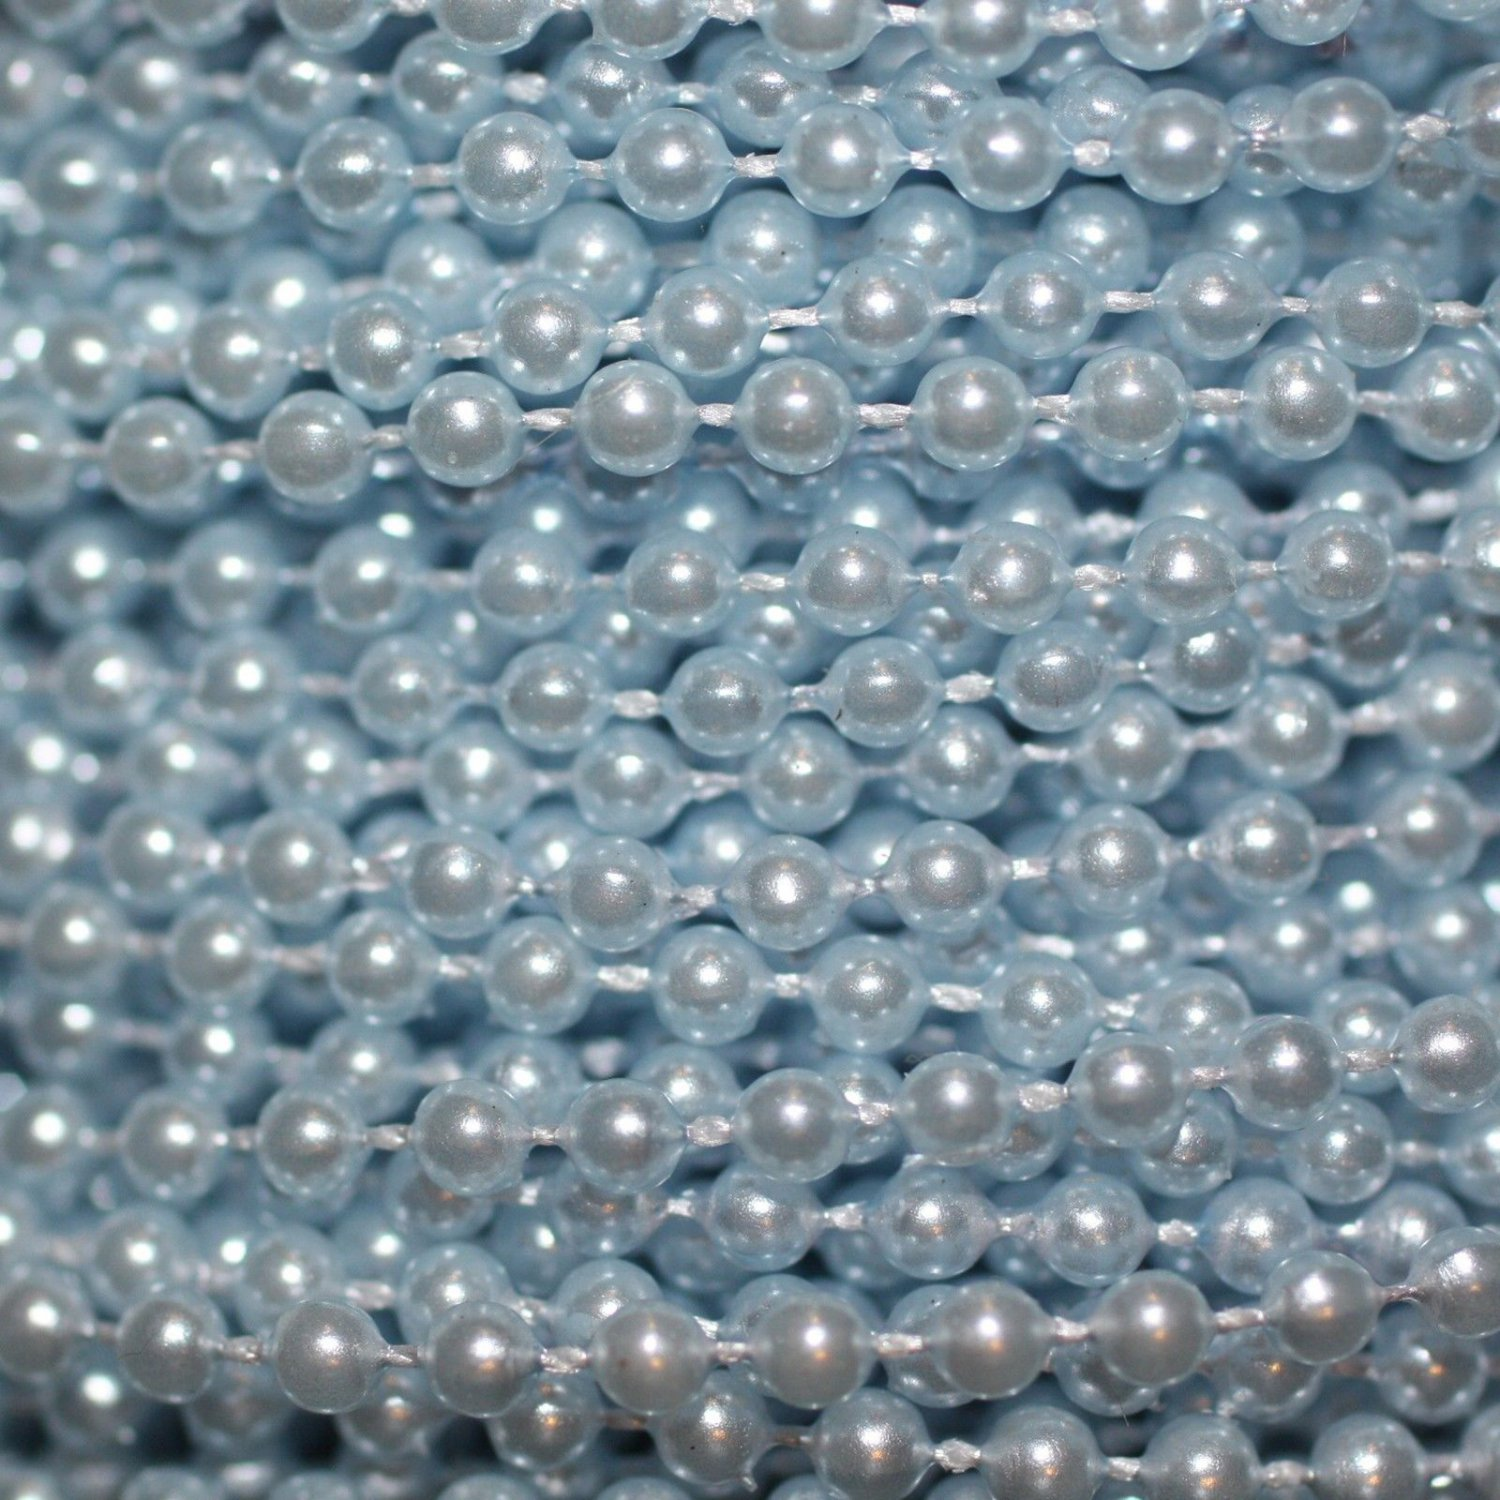 Light Blue Pearl Beads 2.5mm Molded on Thread Fused to string 120 inches (10')